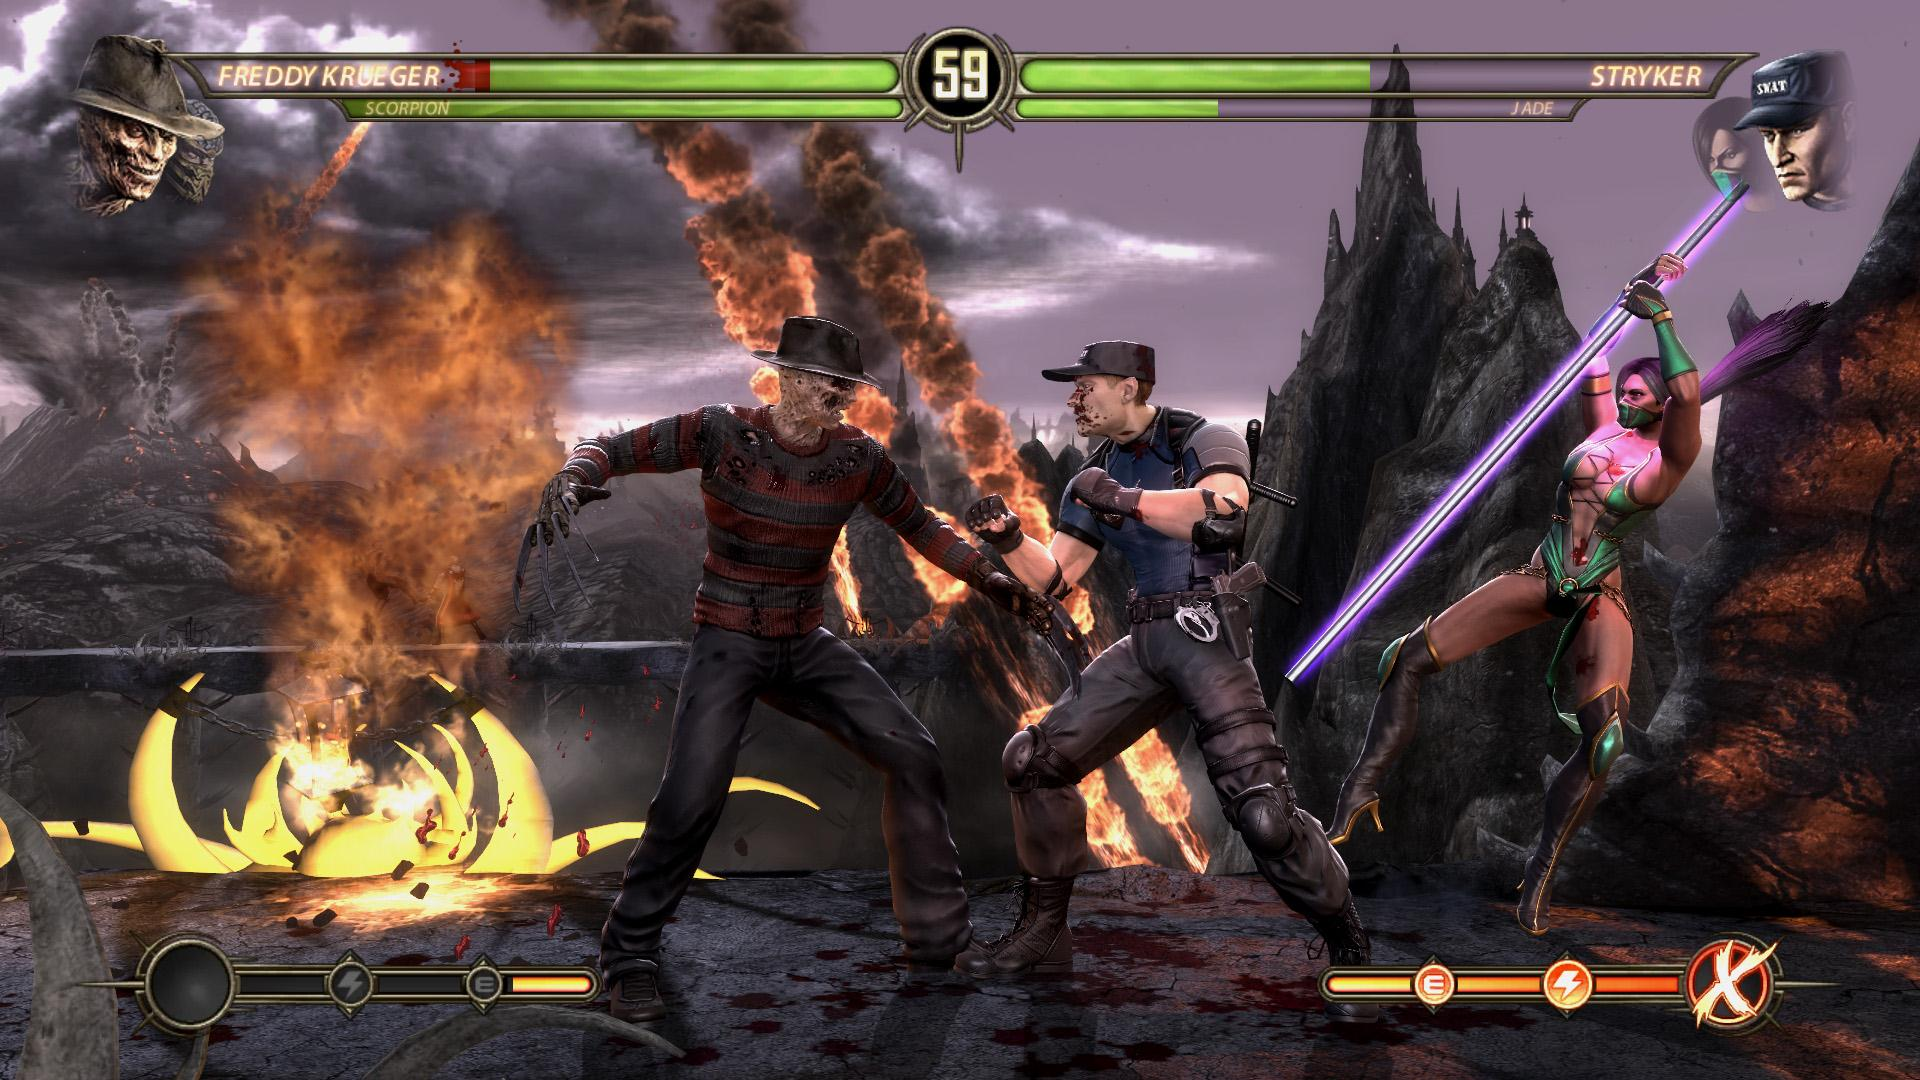 Скачать mortal kombat 9 pc rus бесплатно